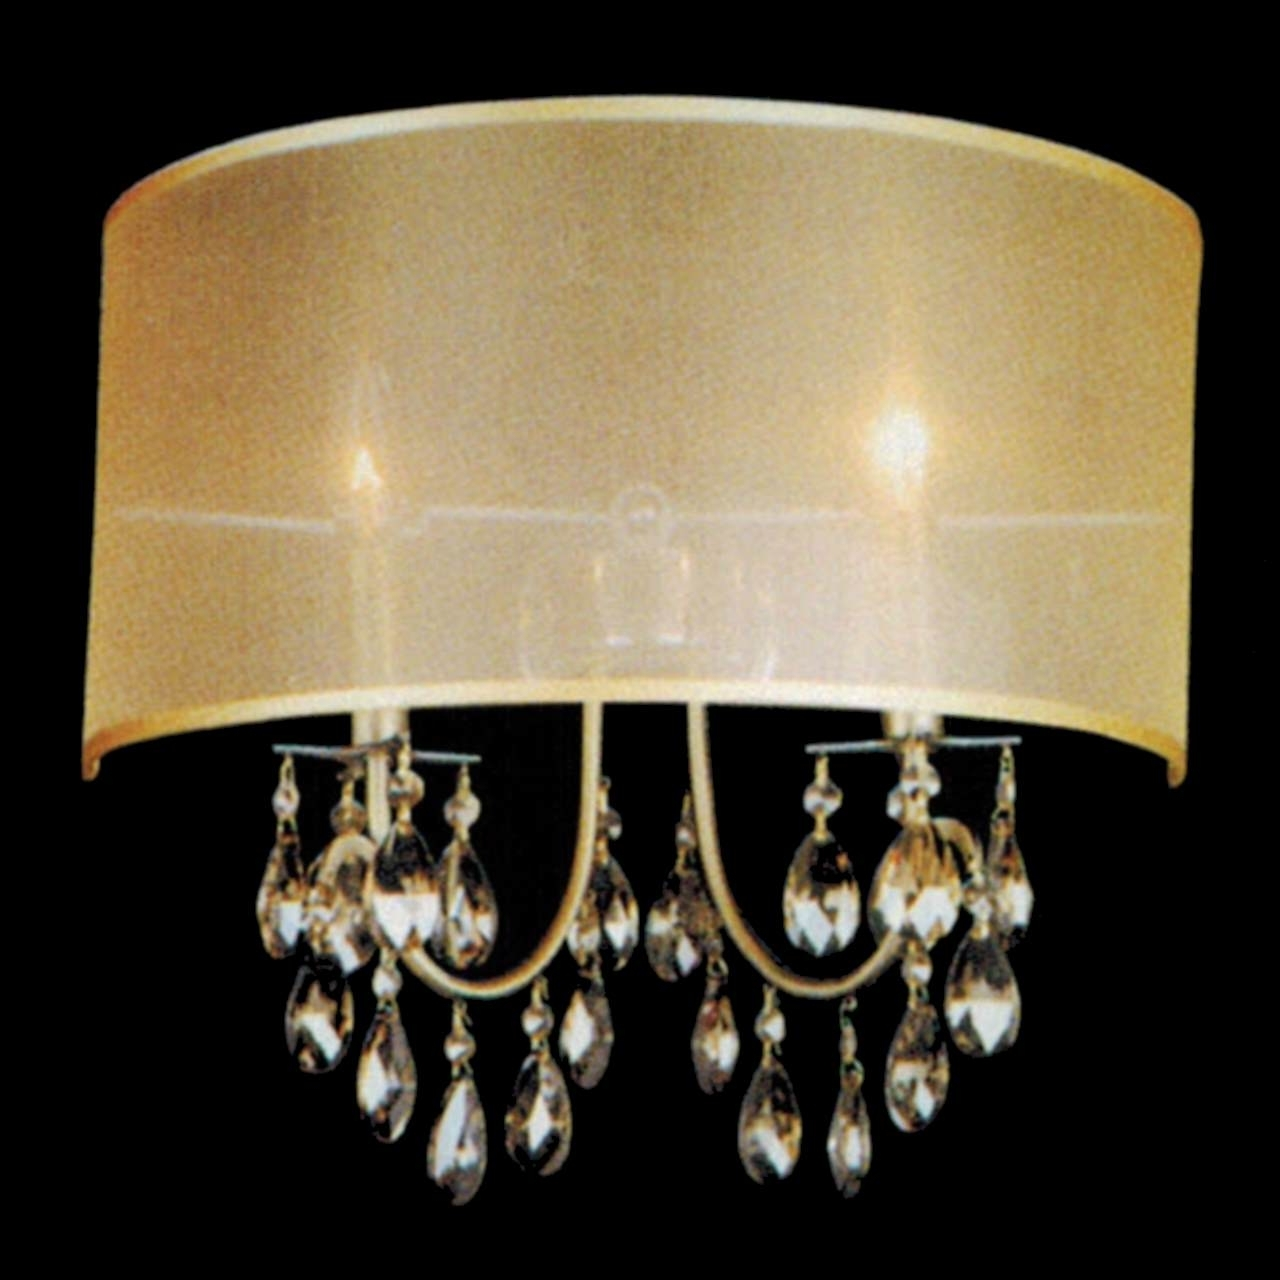 Wall Mounted Mini Chandeliers Inside Most Recently Released Light Fixture : Crystal Led Lighting Mini Chandelier Amazon Real (View 5 of 15)